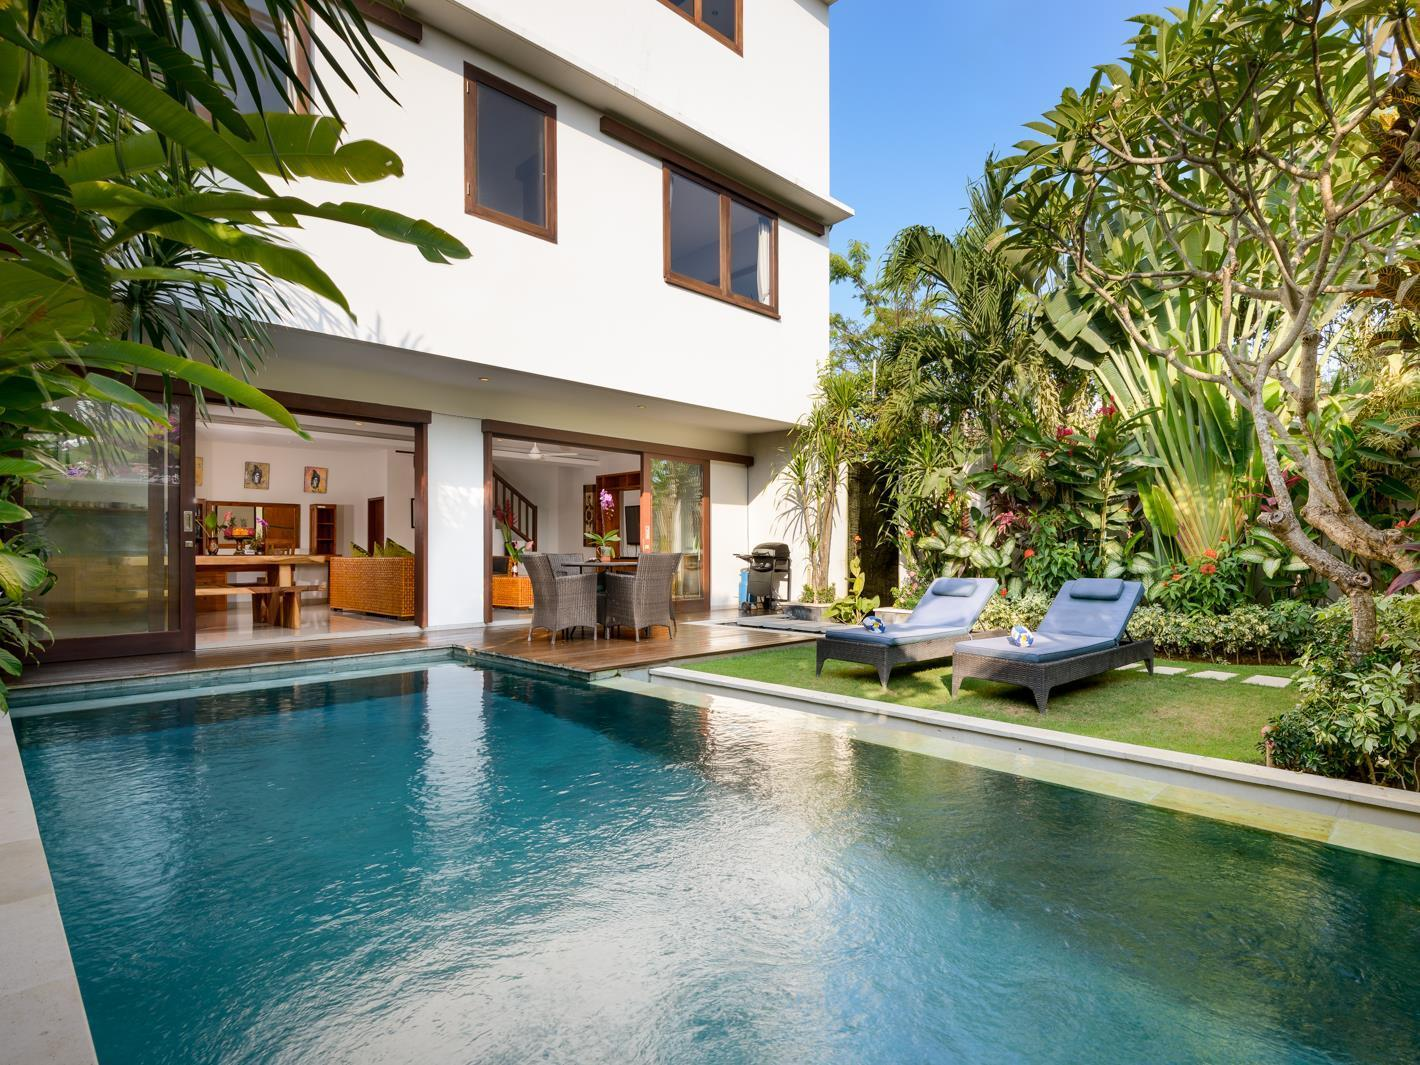 Villa Alamanda 3 bed townhouse with private pool